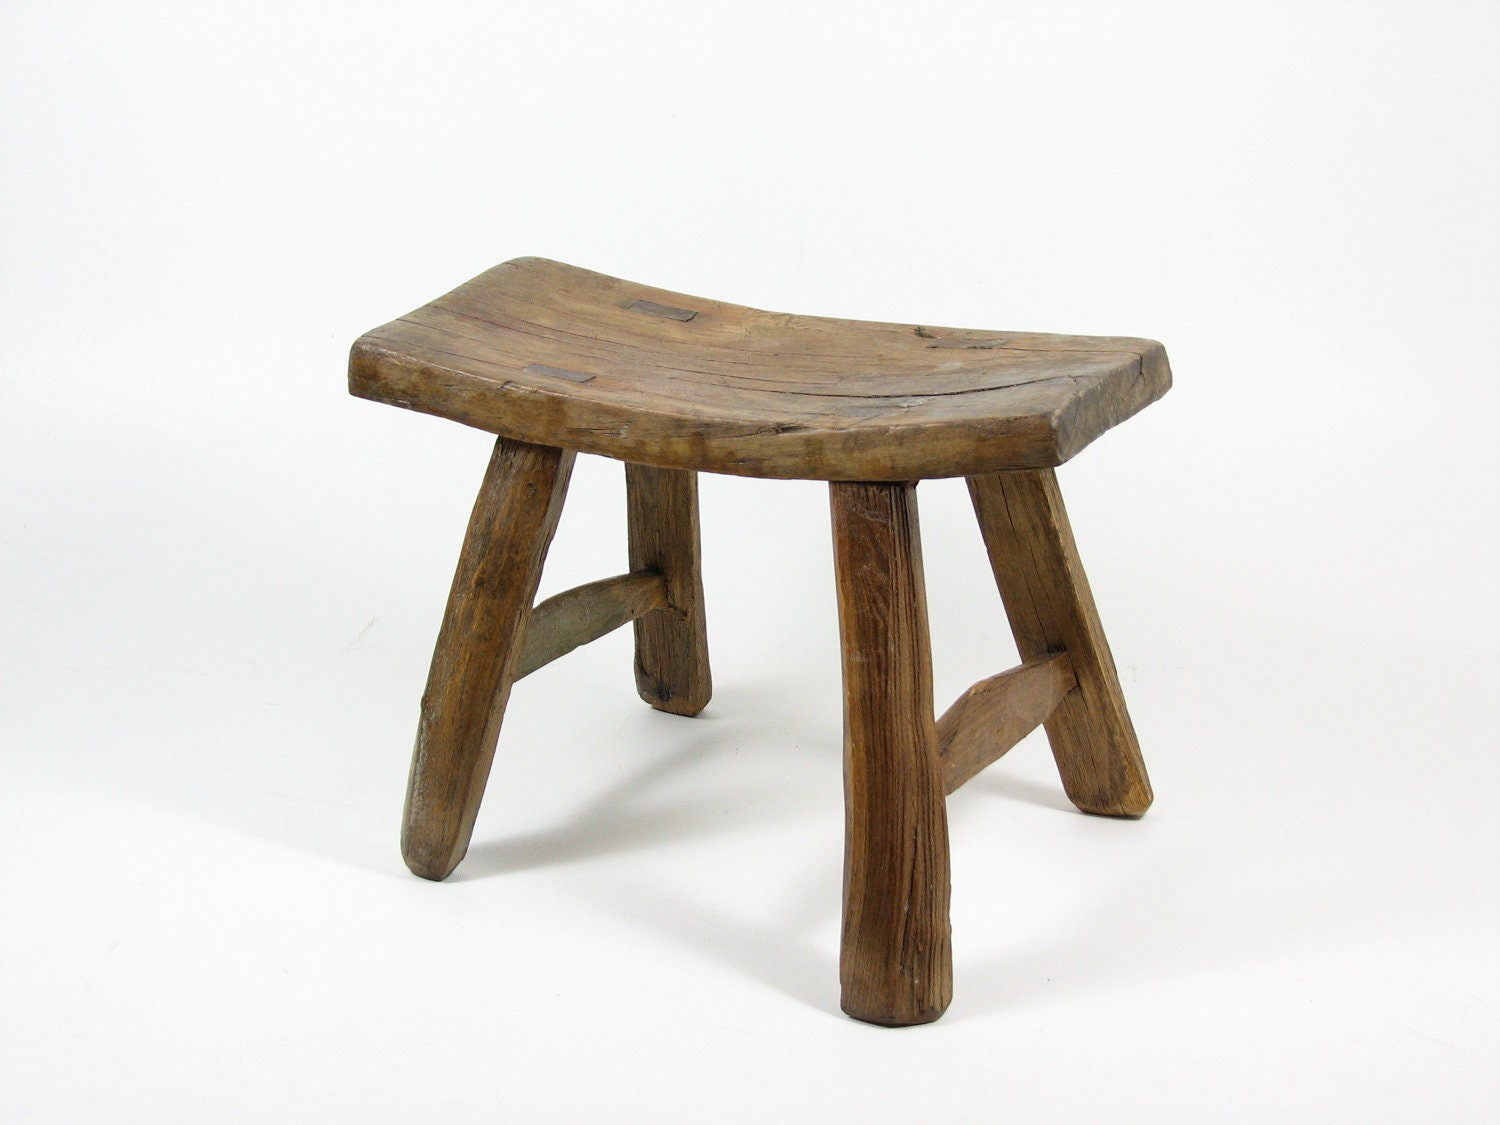 Vintage Wooden Stool Primitive Wood Footstool Natural Wood